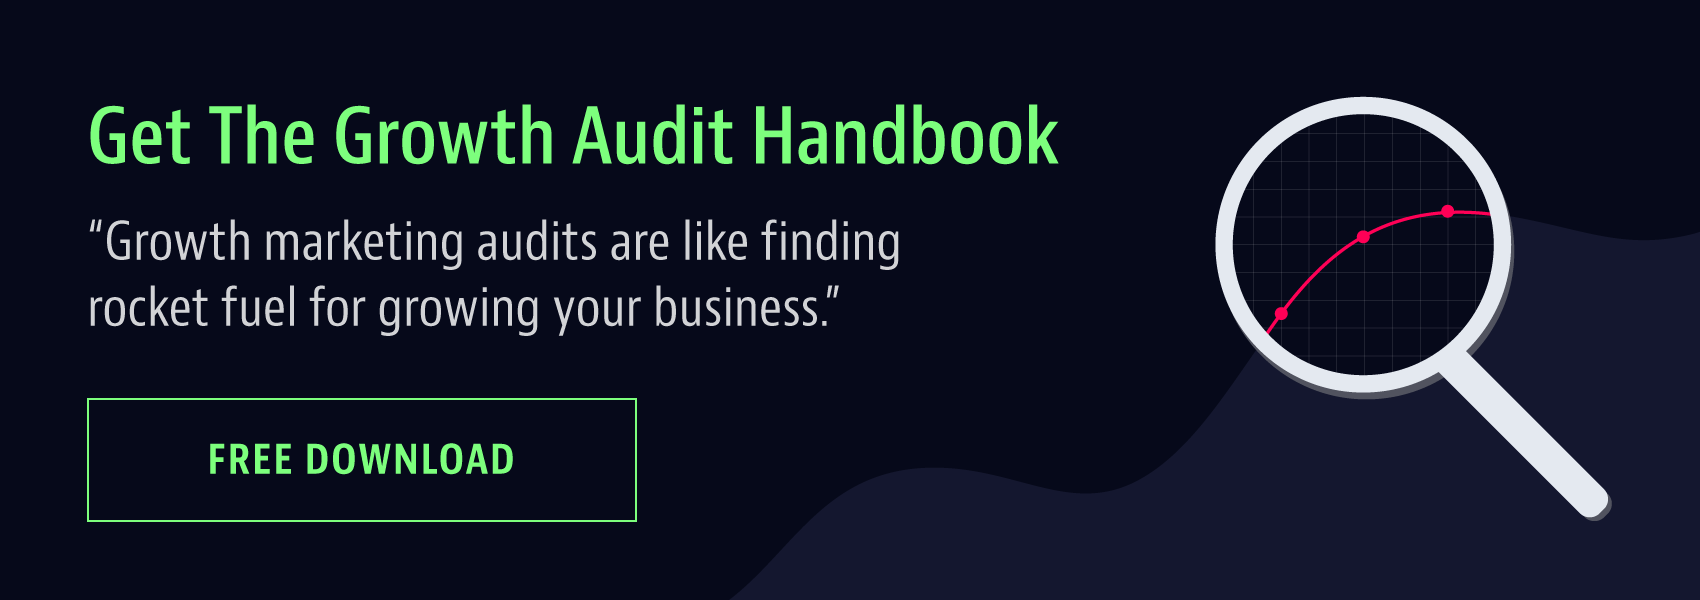 Get The Growth Audit Handbook - Free Download